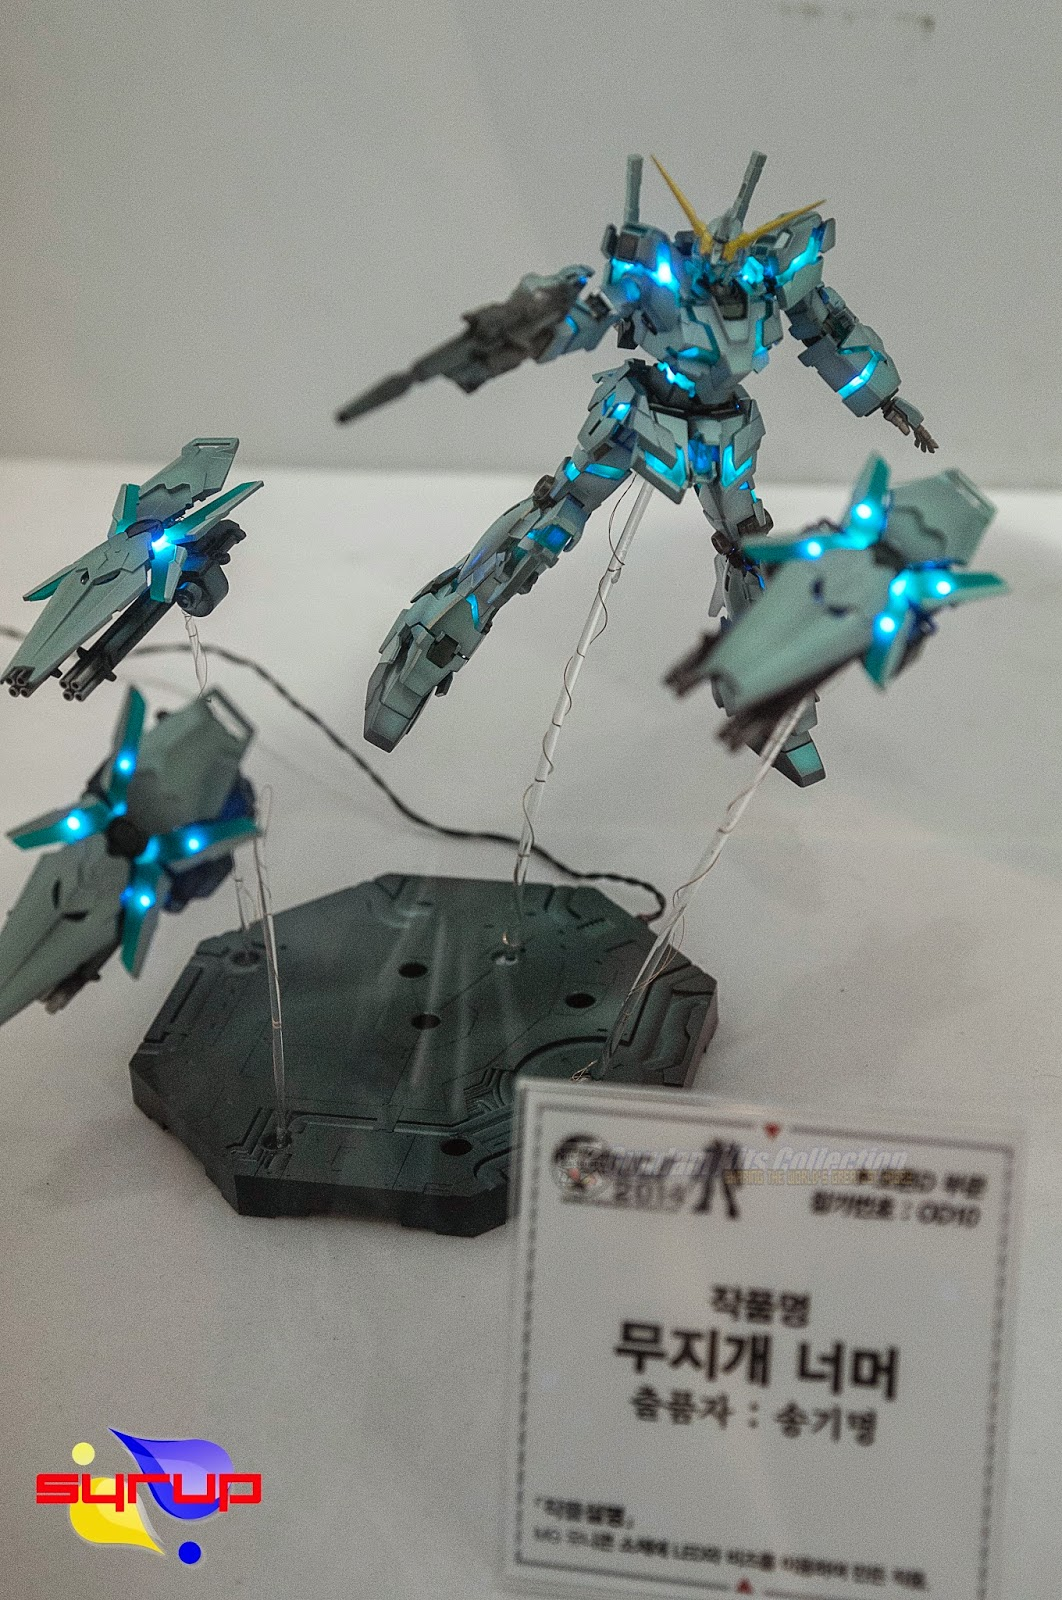 GBWC 2014 Korea Entries Gallery